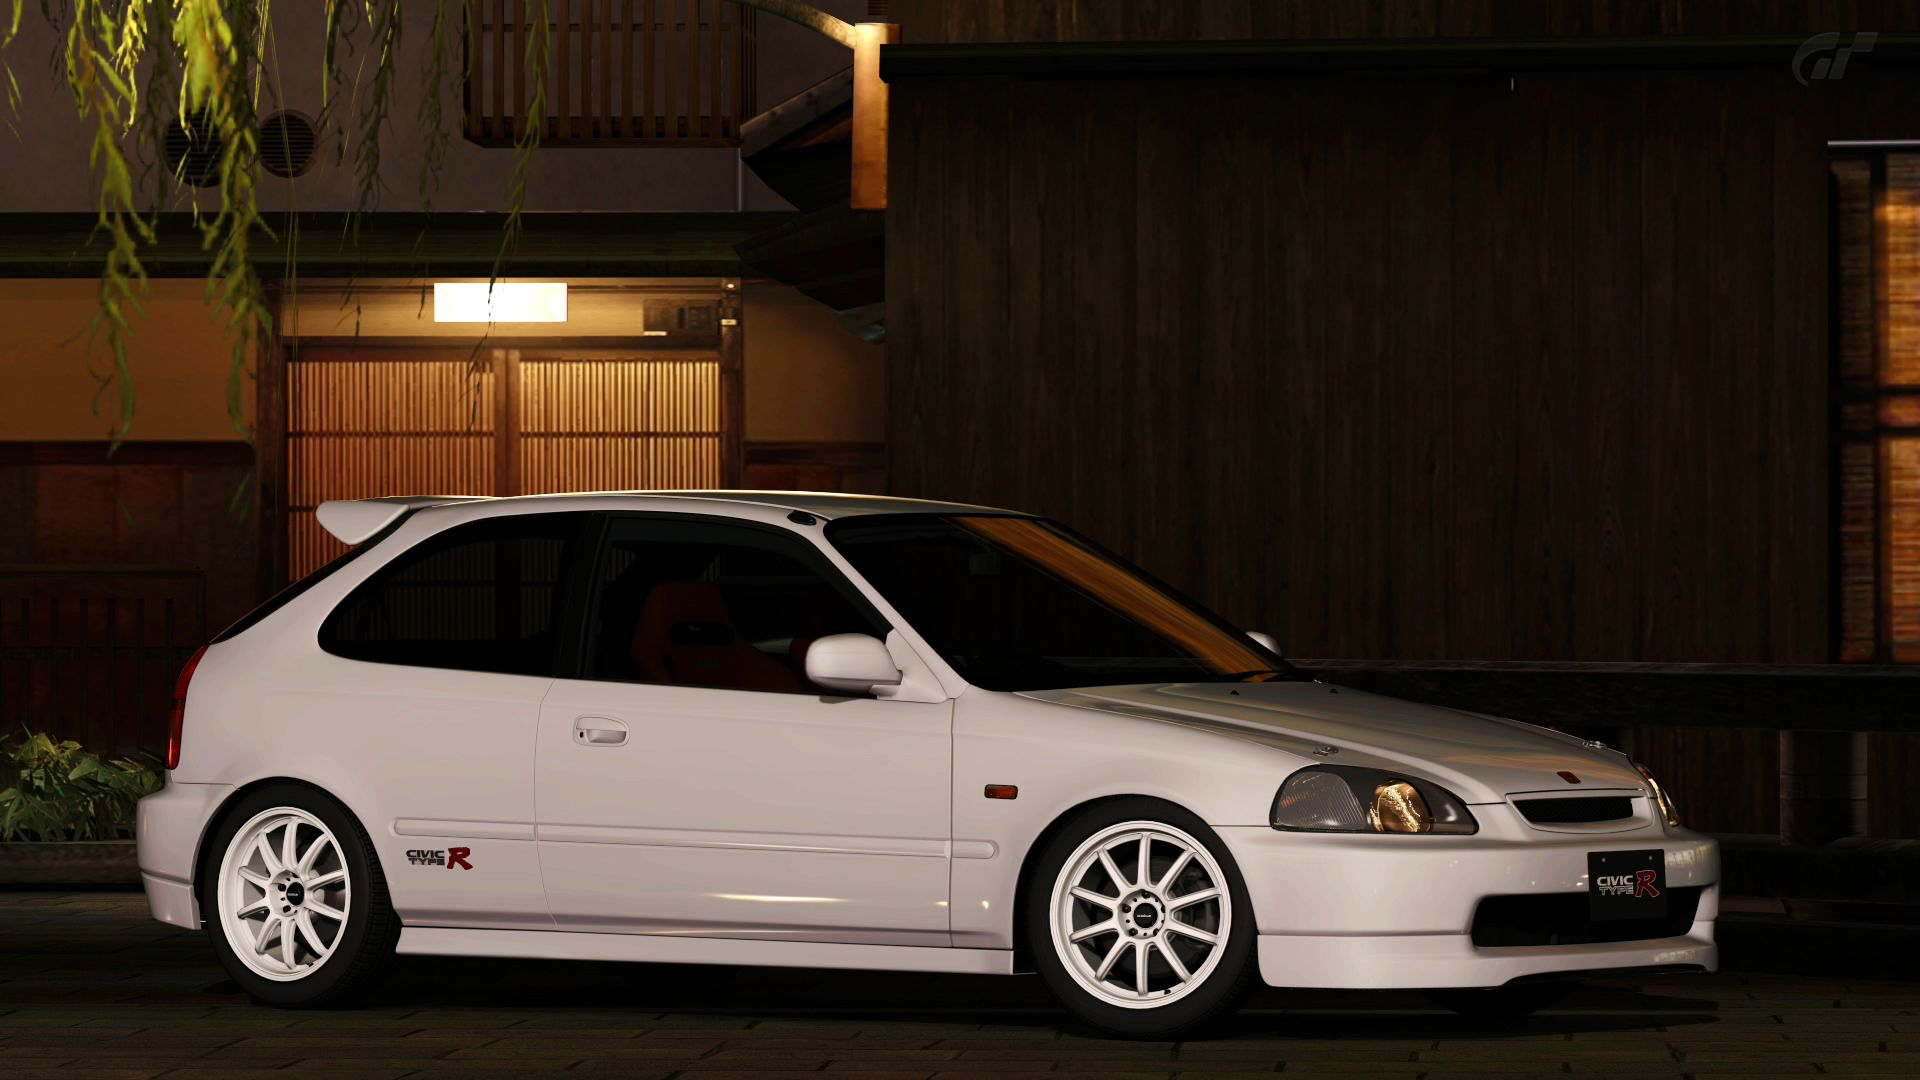 Honda Civic Ek Type R Wallpaper Picture Etb Cars Desktop Hd